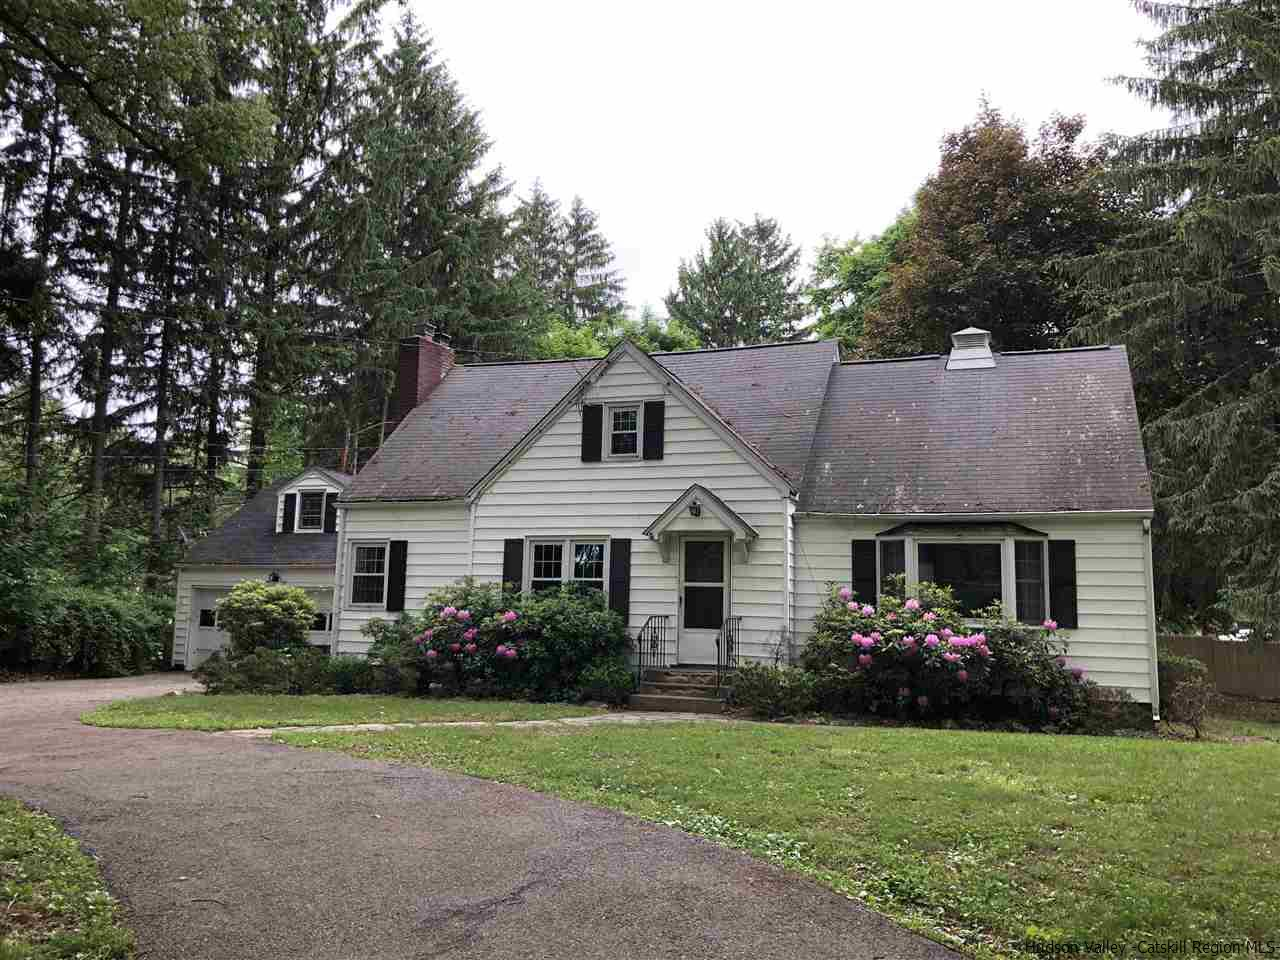 Single Family Home for Sale at 1335 Route 208 1335 Route 208 Wallkill, New York 12589 United States